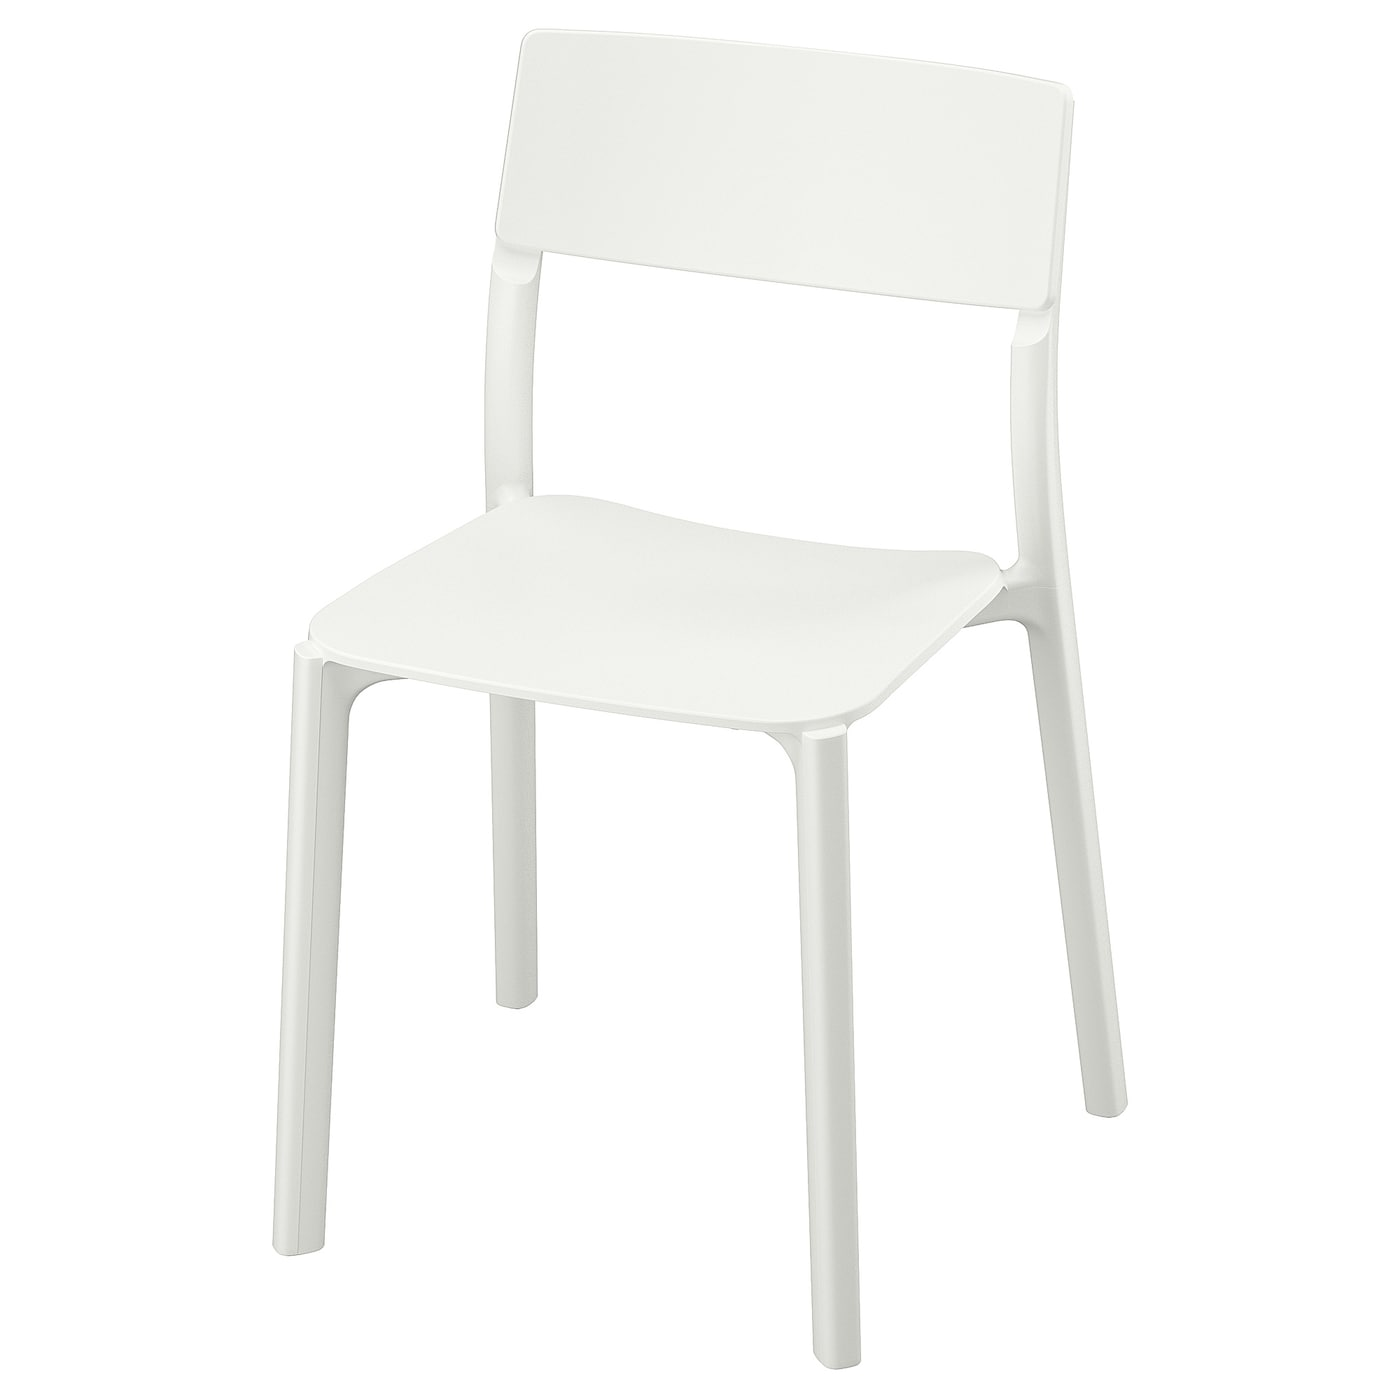 IKEA JANINGE chair You can stack the chairs, so they take less space when you're not using them.